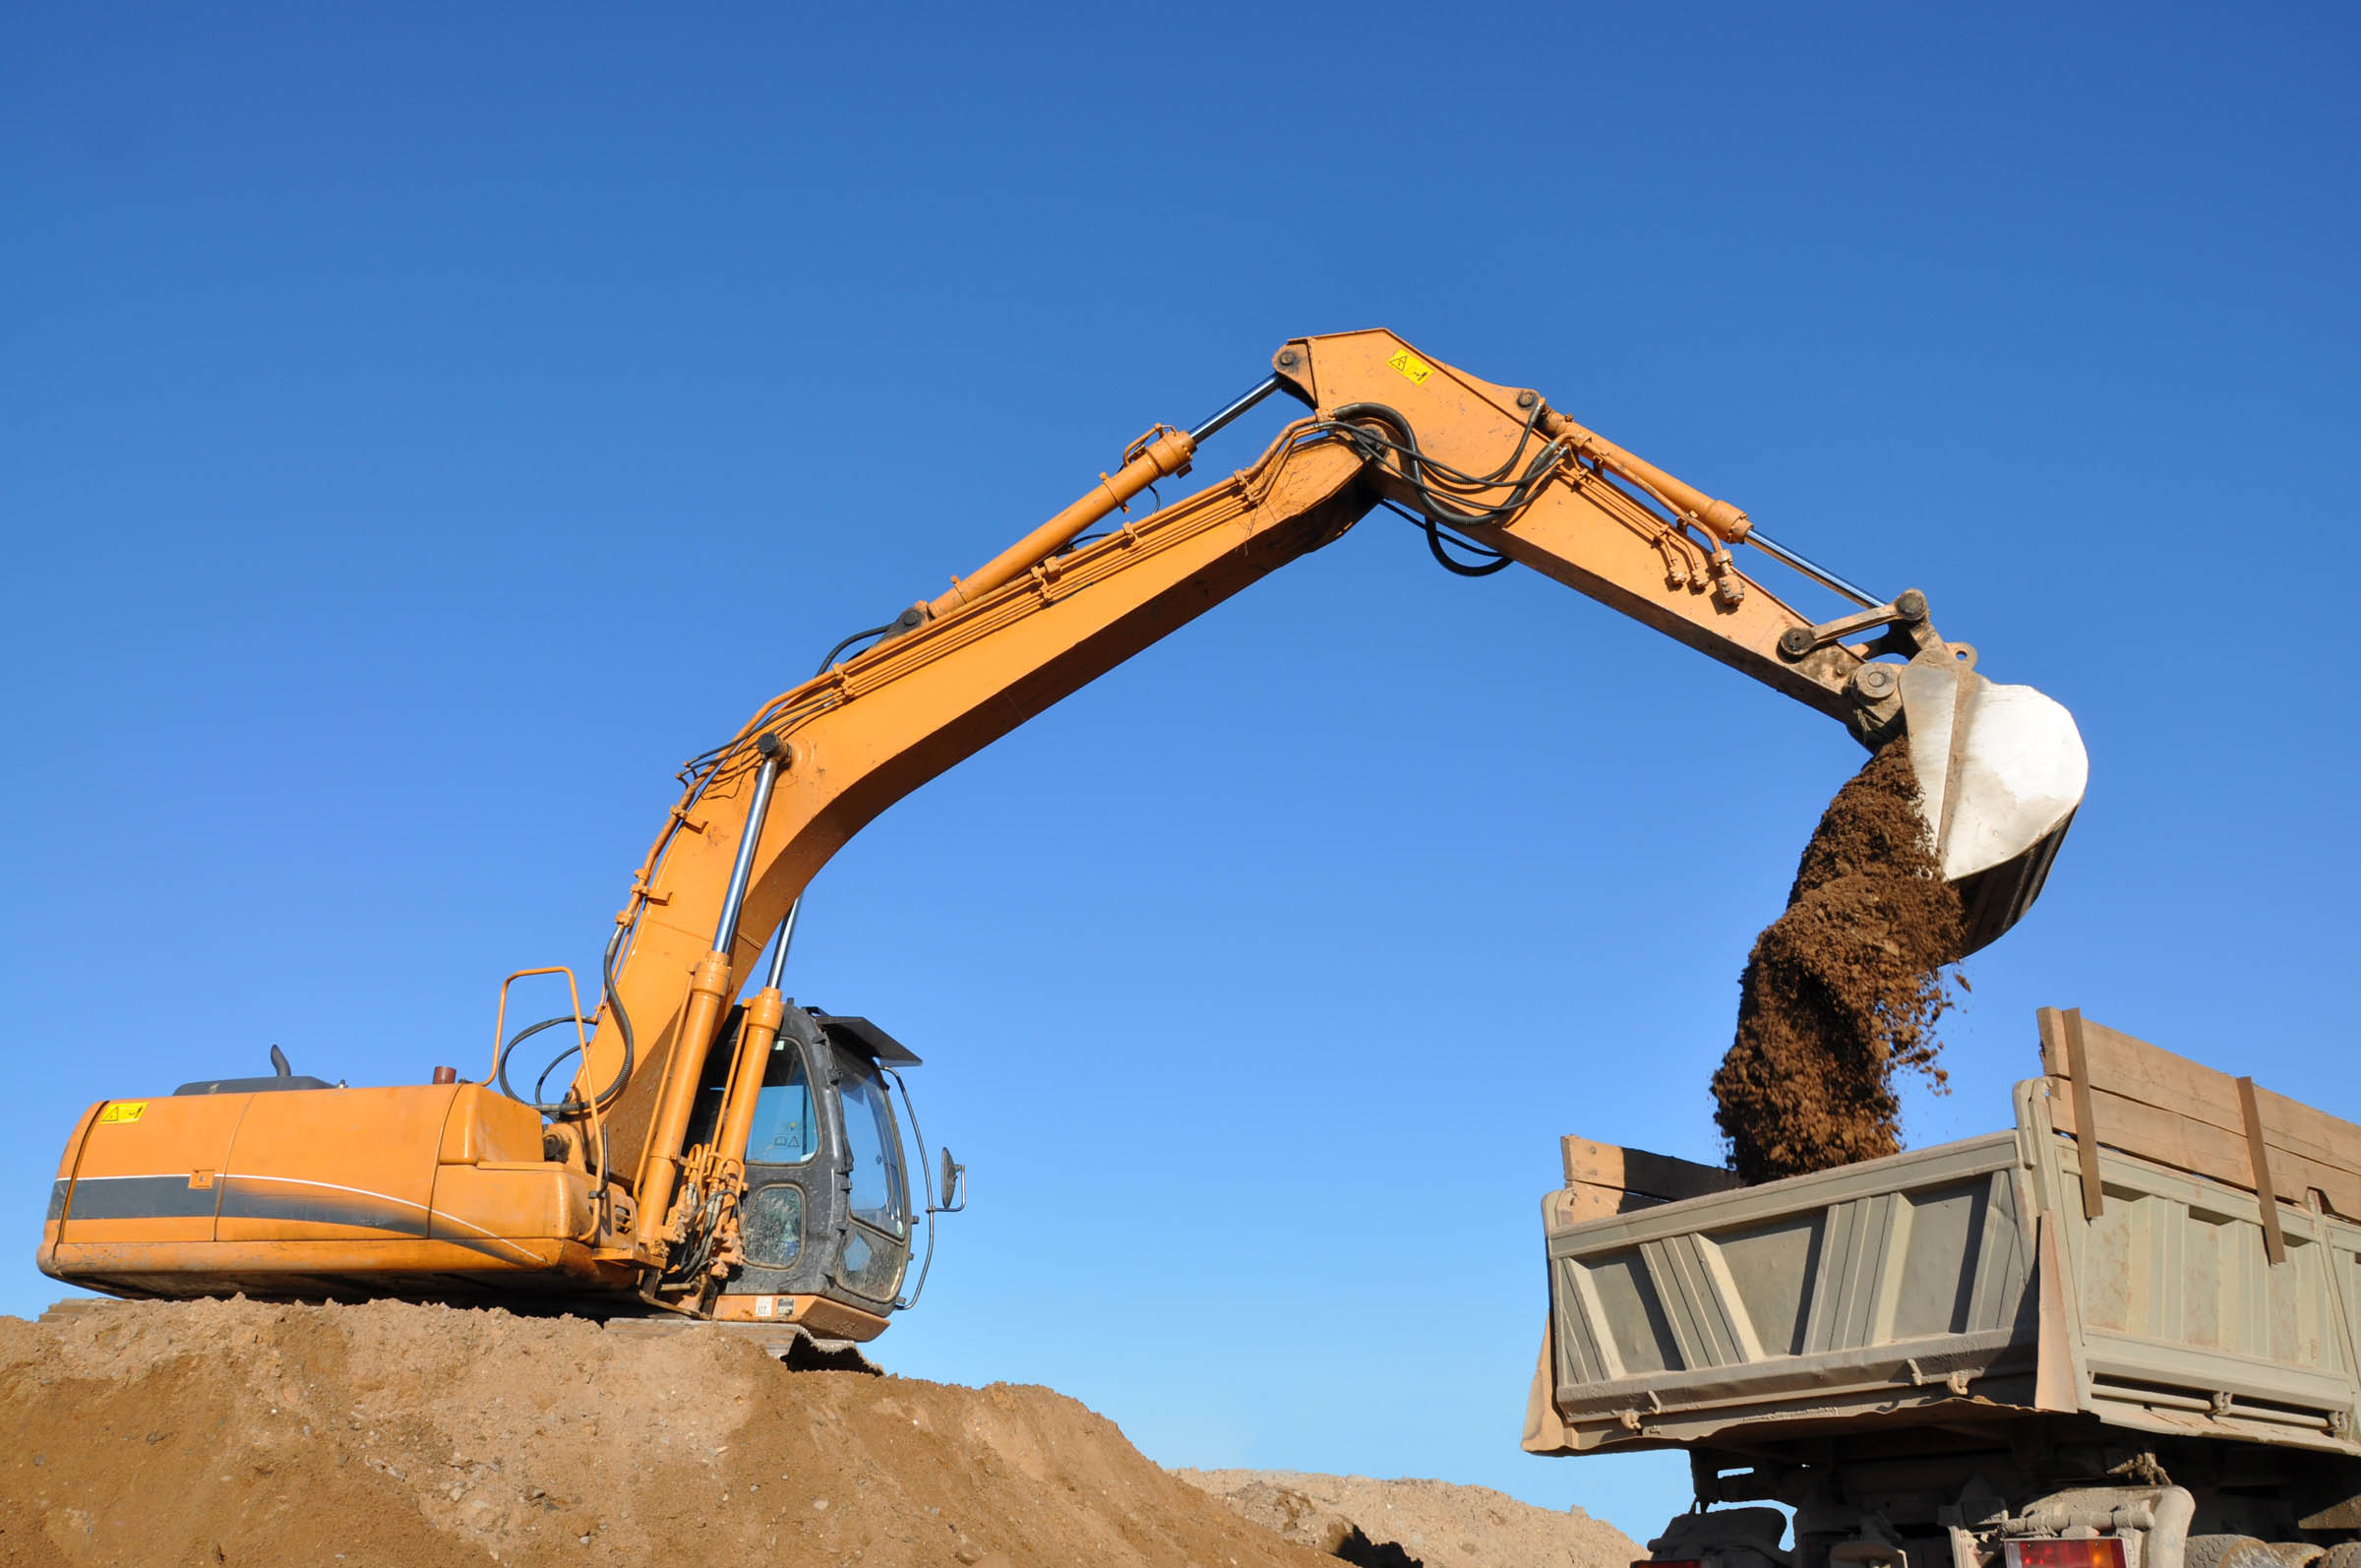 Excavator, Construction, Power, Mine, Mining, HQ Photo